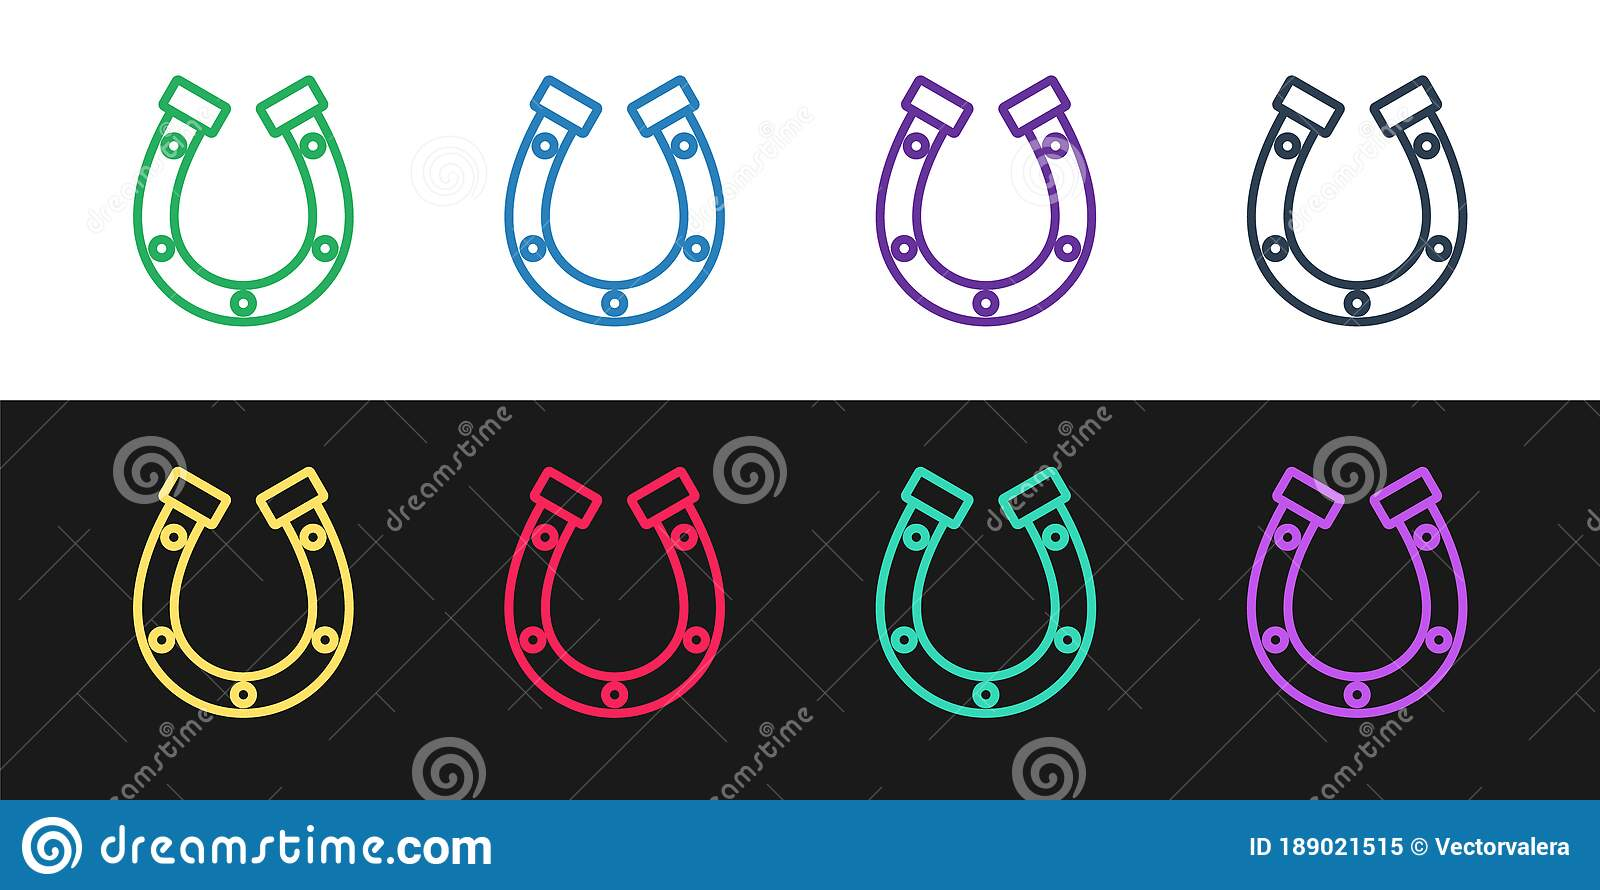 Horseshoe Black White Stock Illustrations 2 080 Horseshoe Black White Stock Illustrations Vectors Clipart Dreamstime